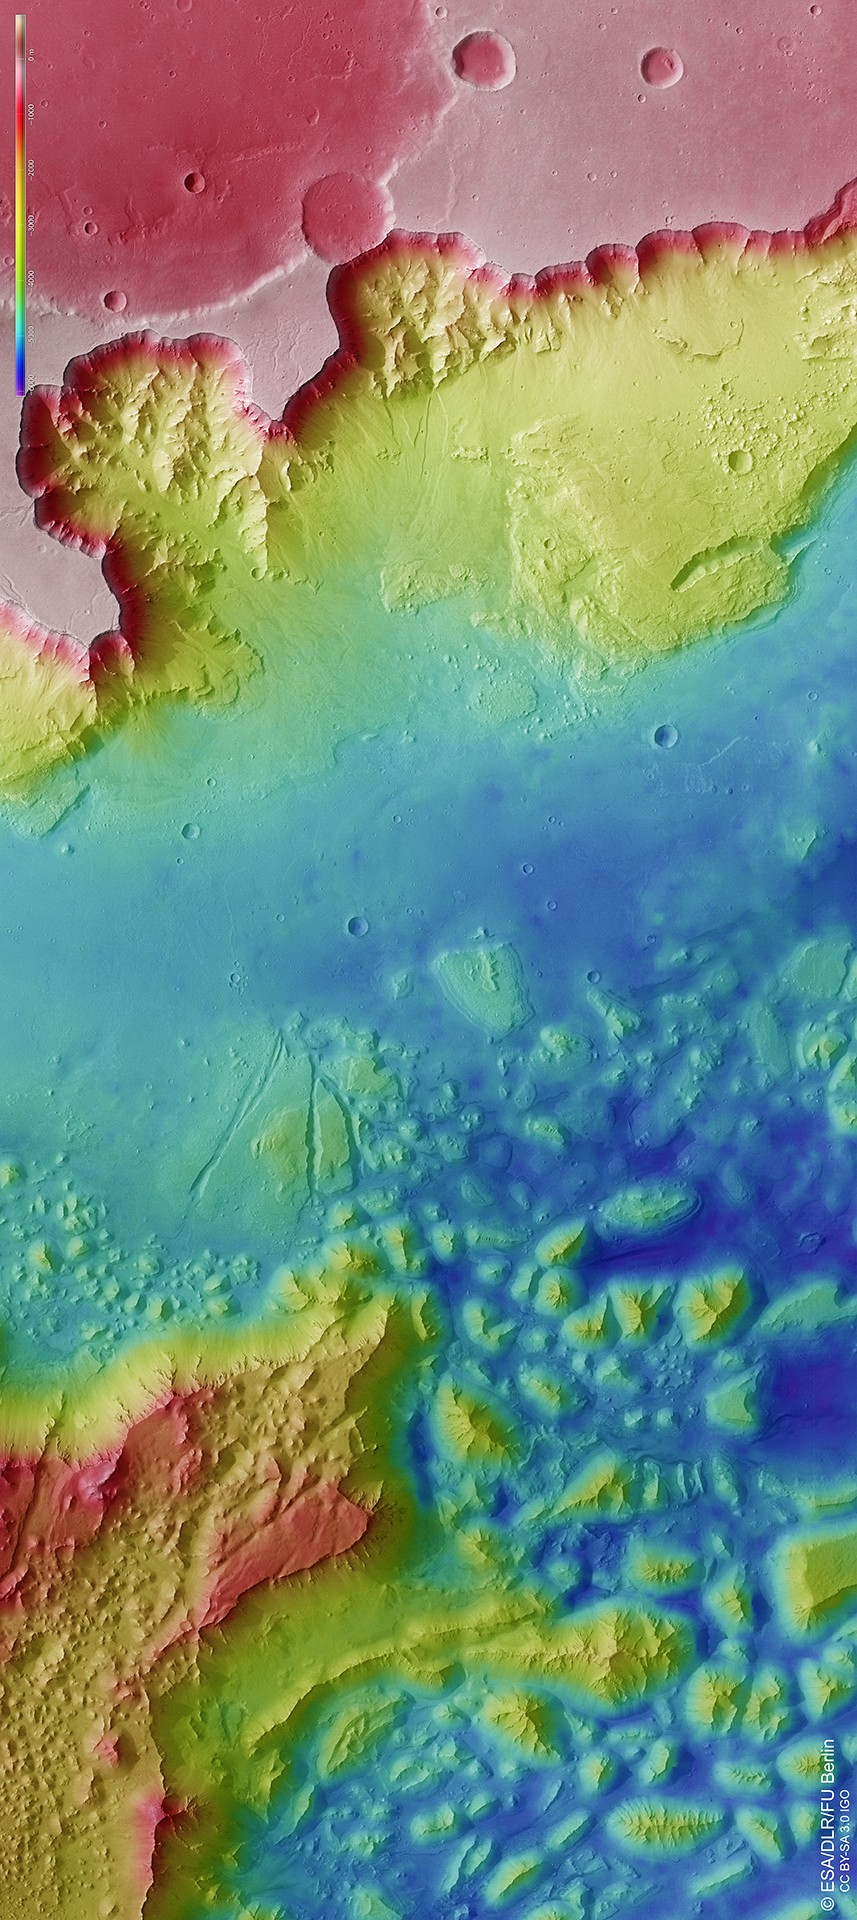 Aurorae_Chaos_and_Ganges_Chasma_topography (1)